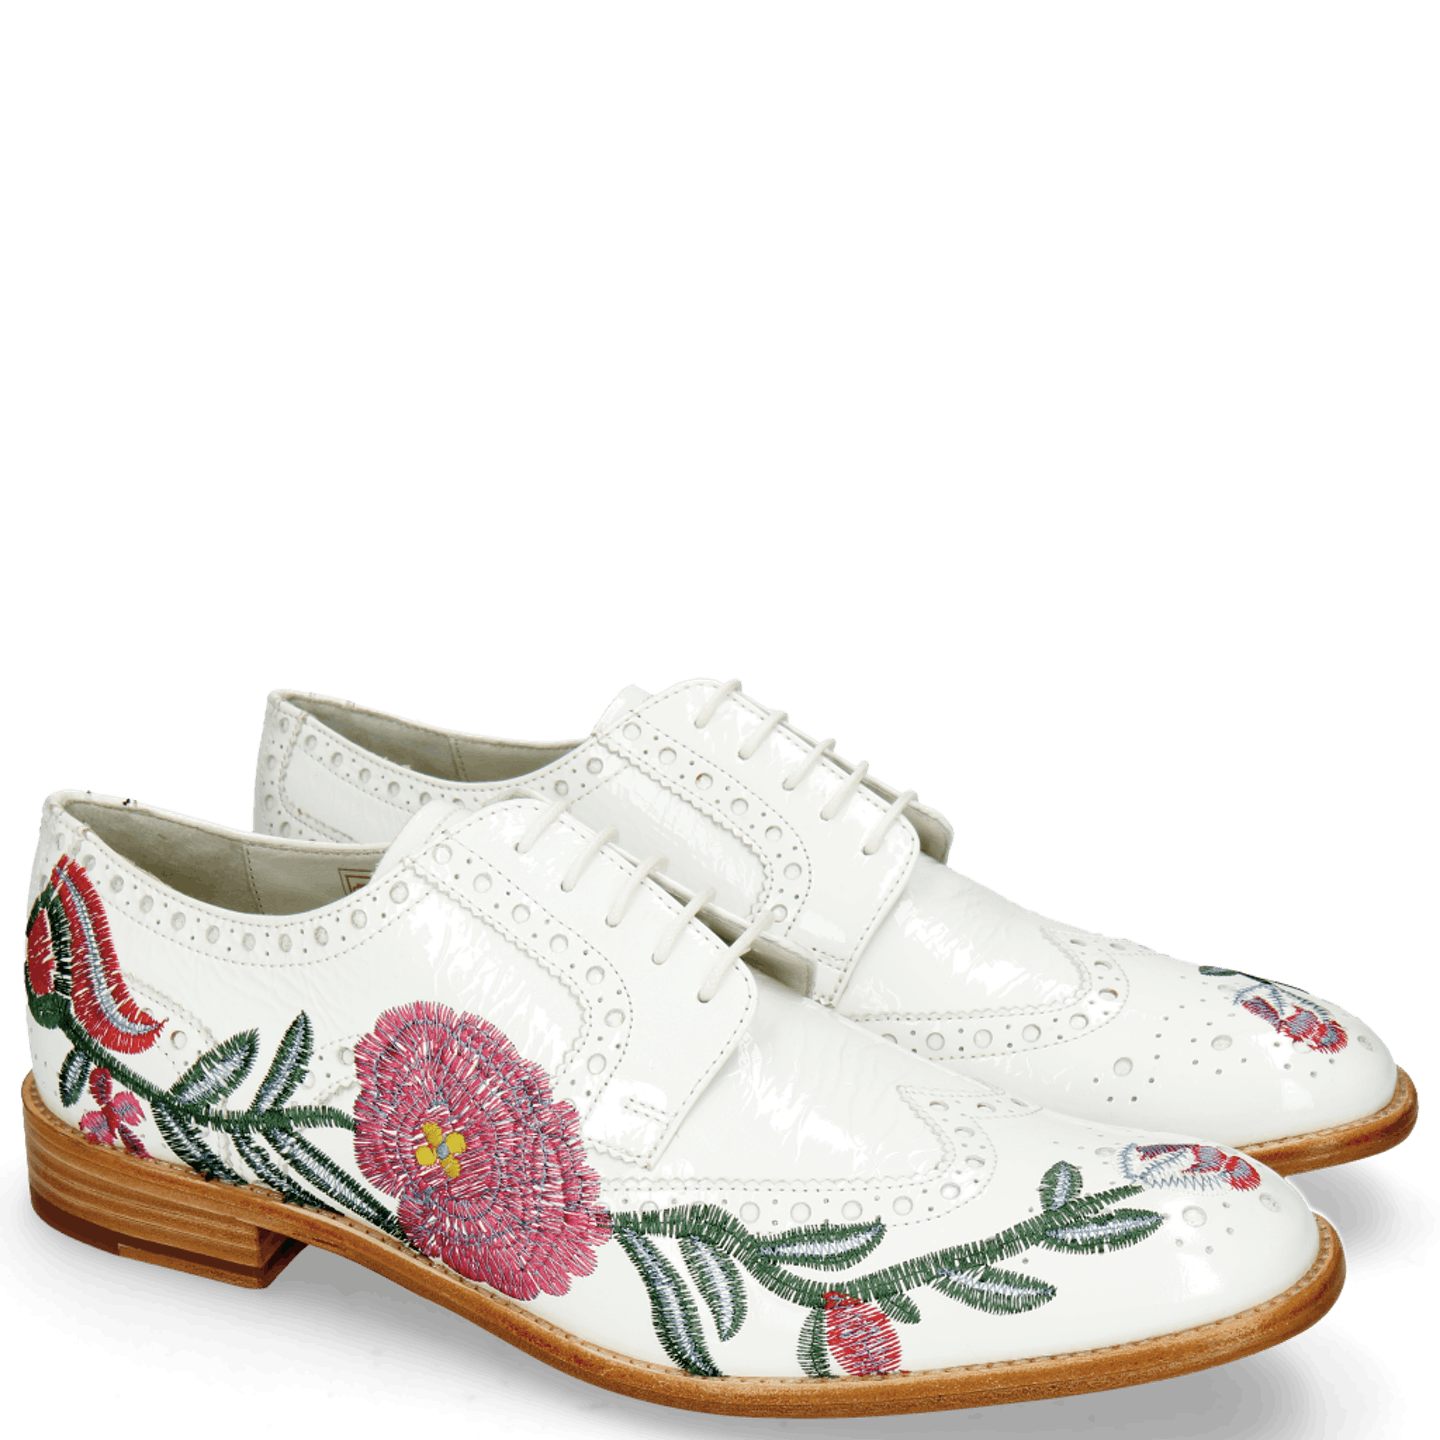 Eddy 38 Soft Patent White Embroidery Flowers